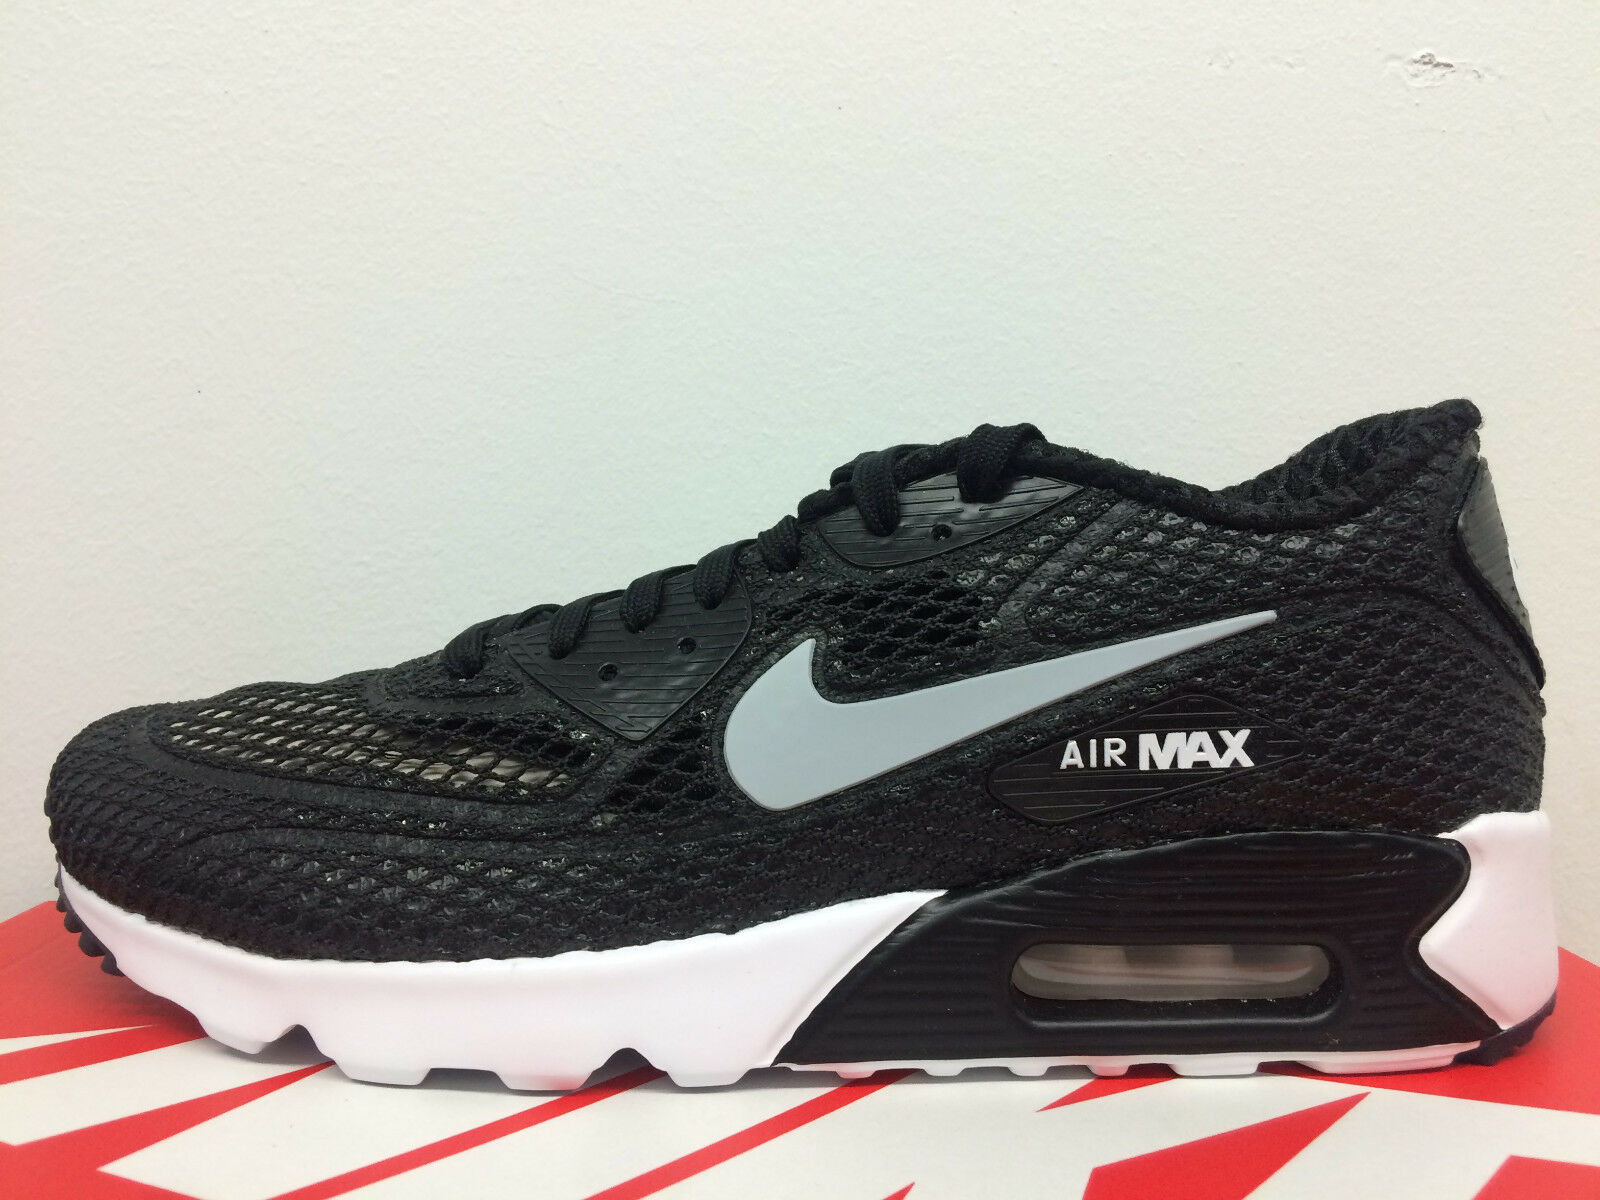 Nike Air Max 90 Ultra BR Premium QS Black 810170-002 9.5-11.5 1 The most popular shoes for men and women